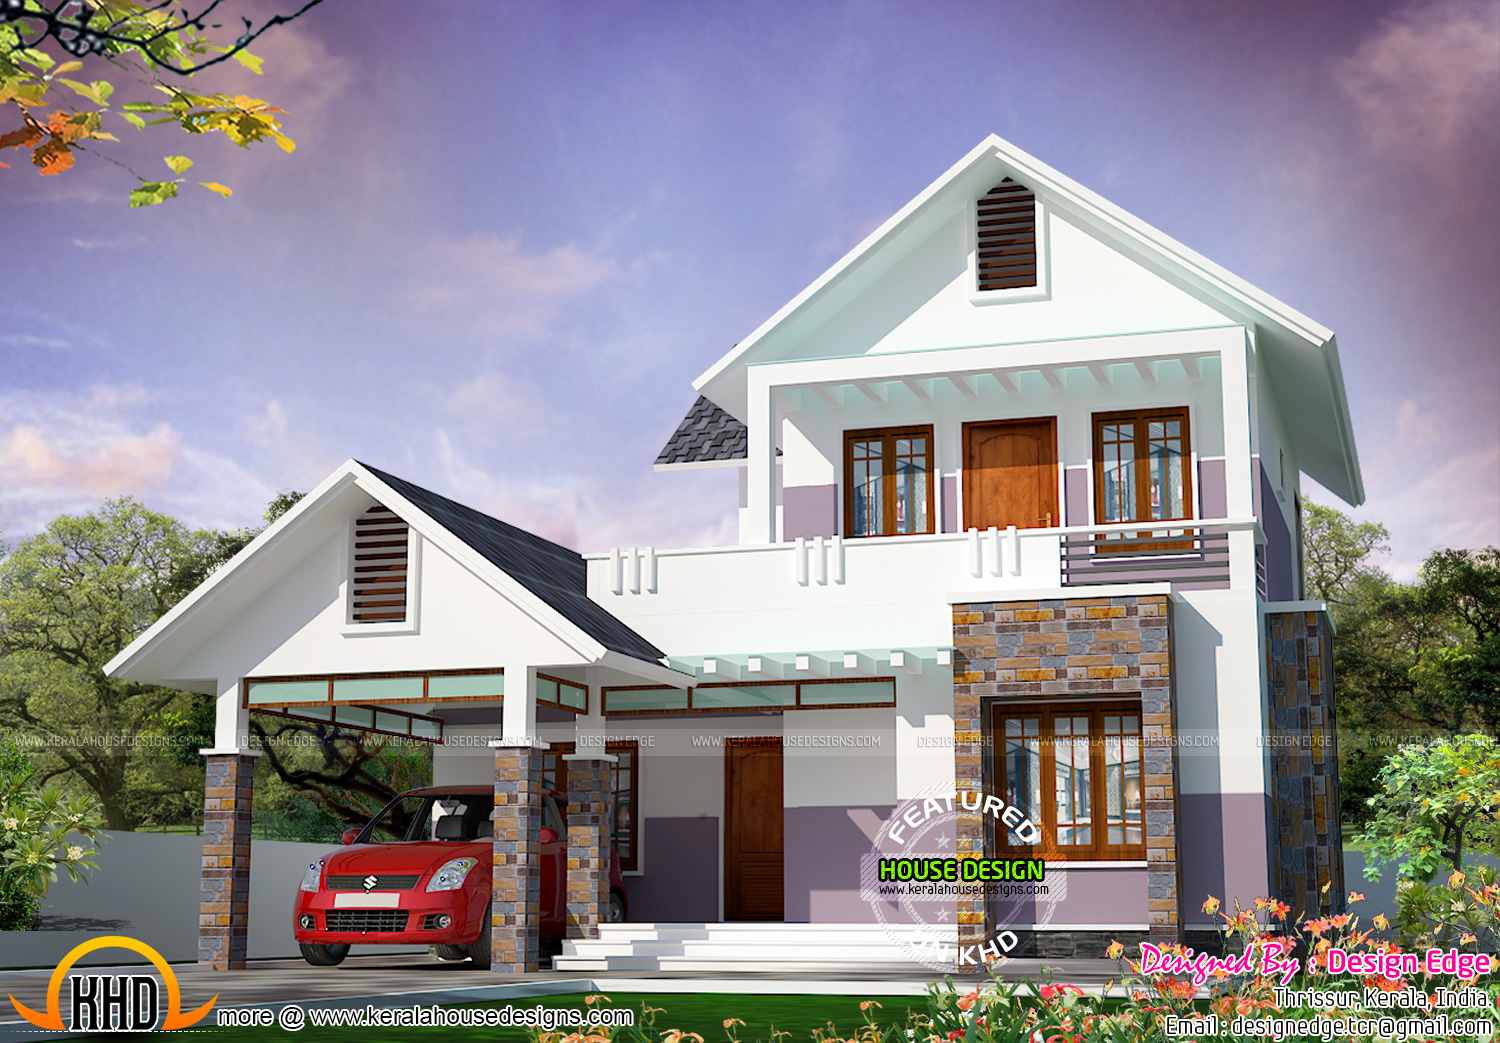 Simple modern house in 1700 sq ft kerala home design and for Simple modern house ideas